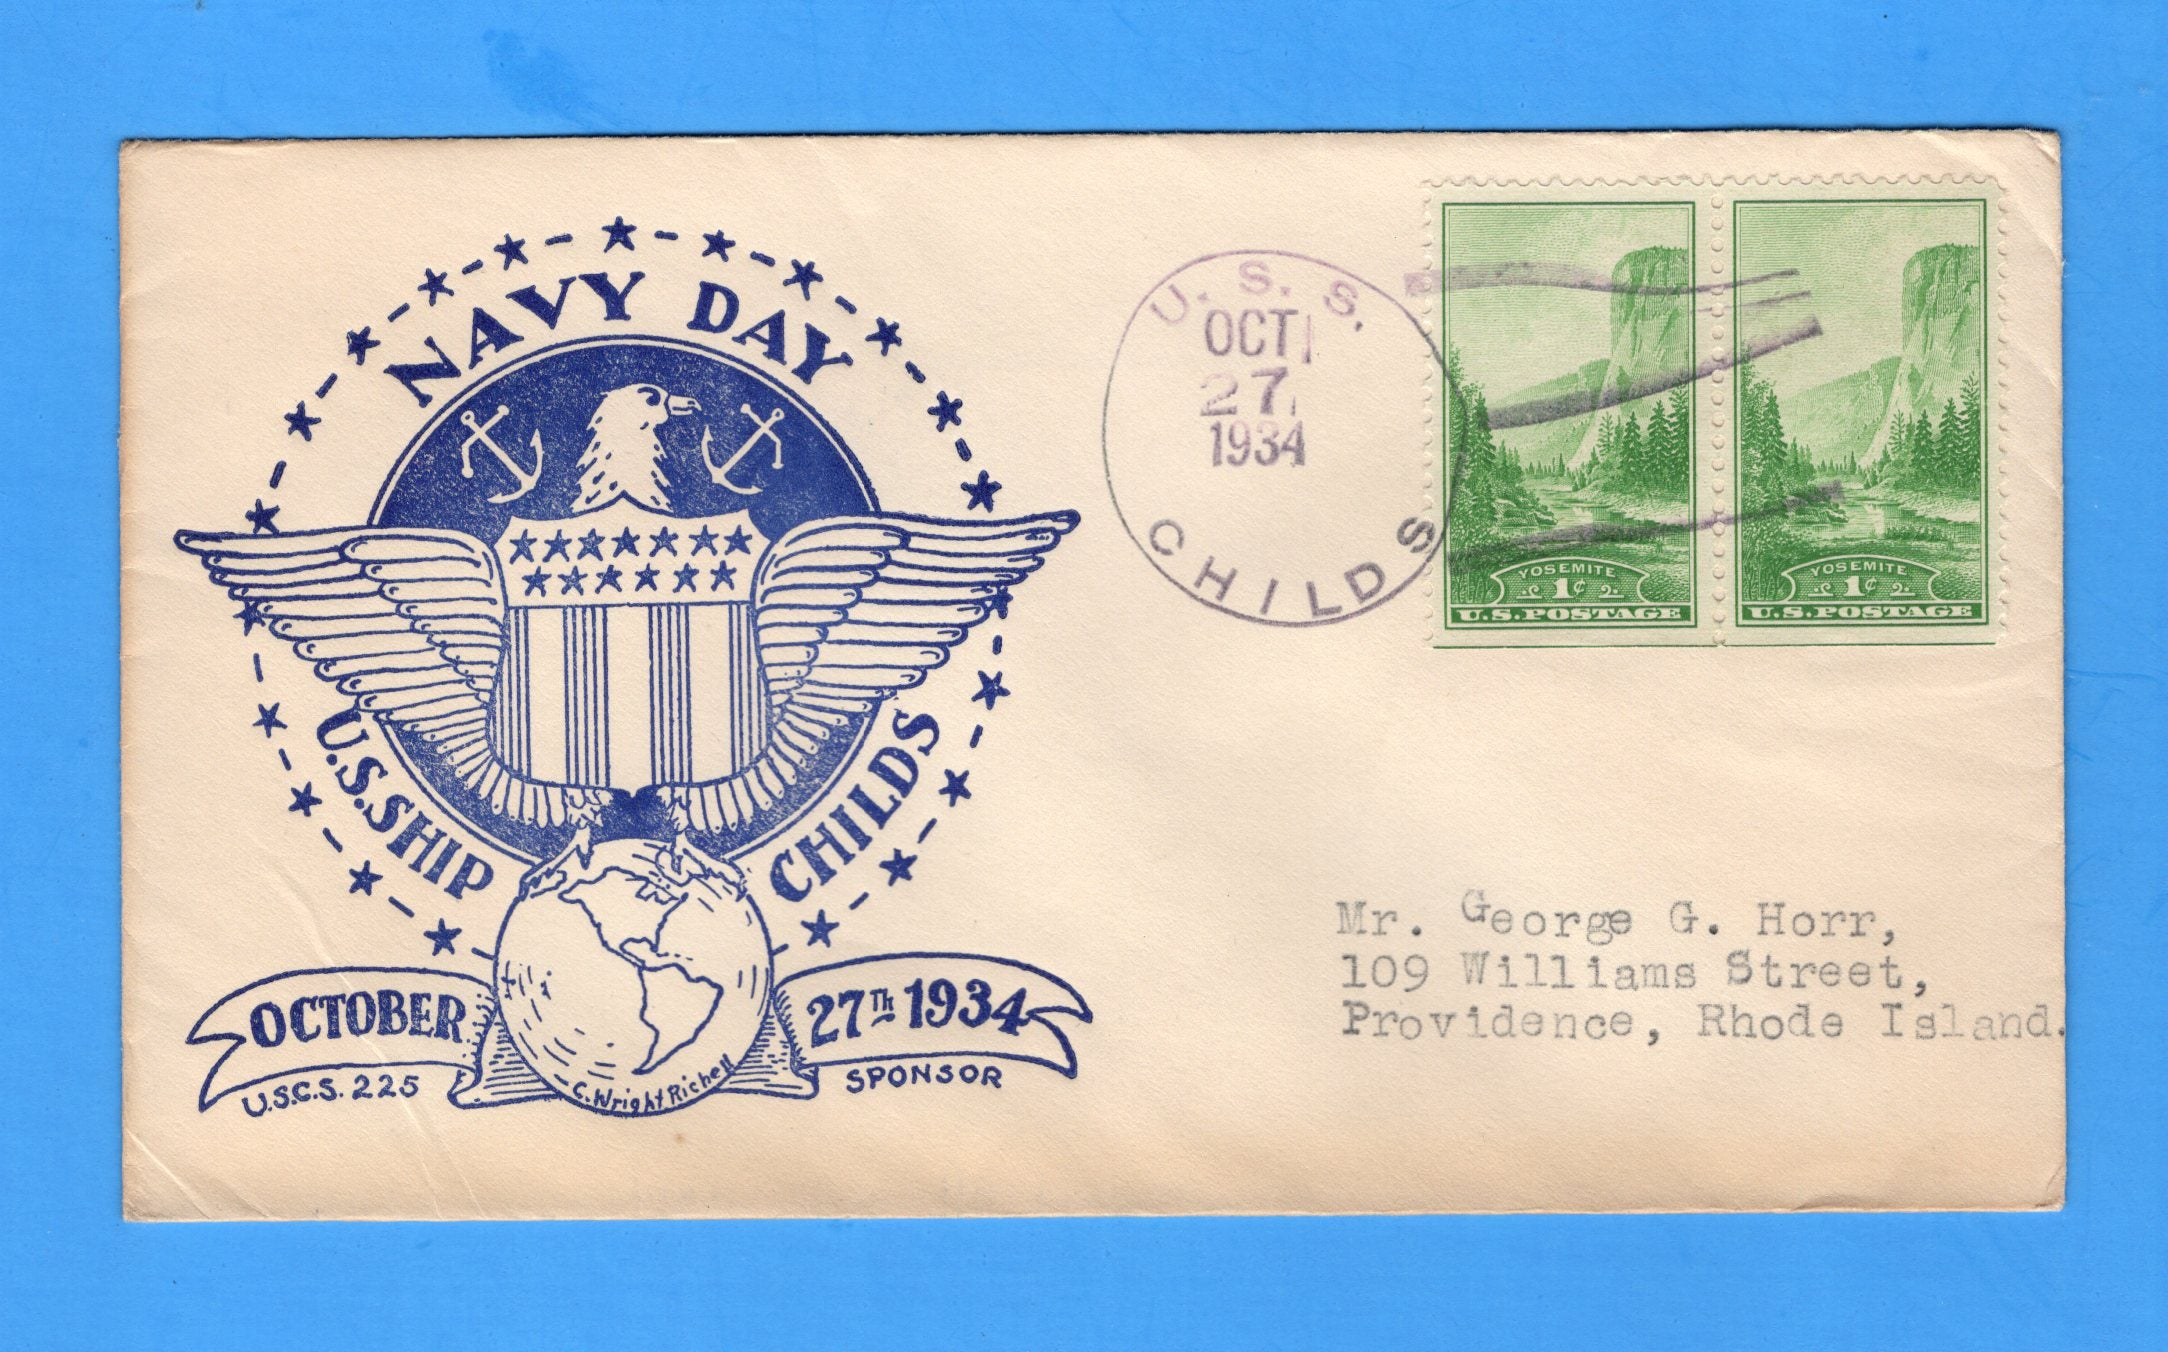 USS Childs DD-241 Navy Day October 27, 1934